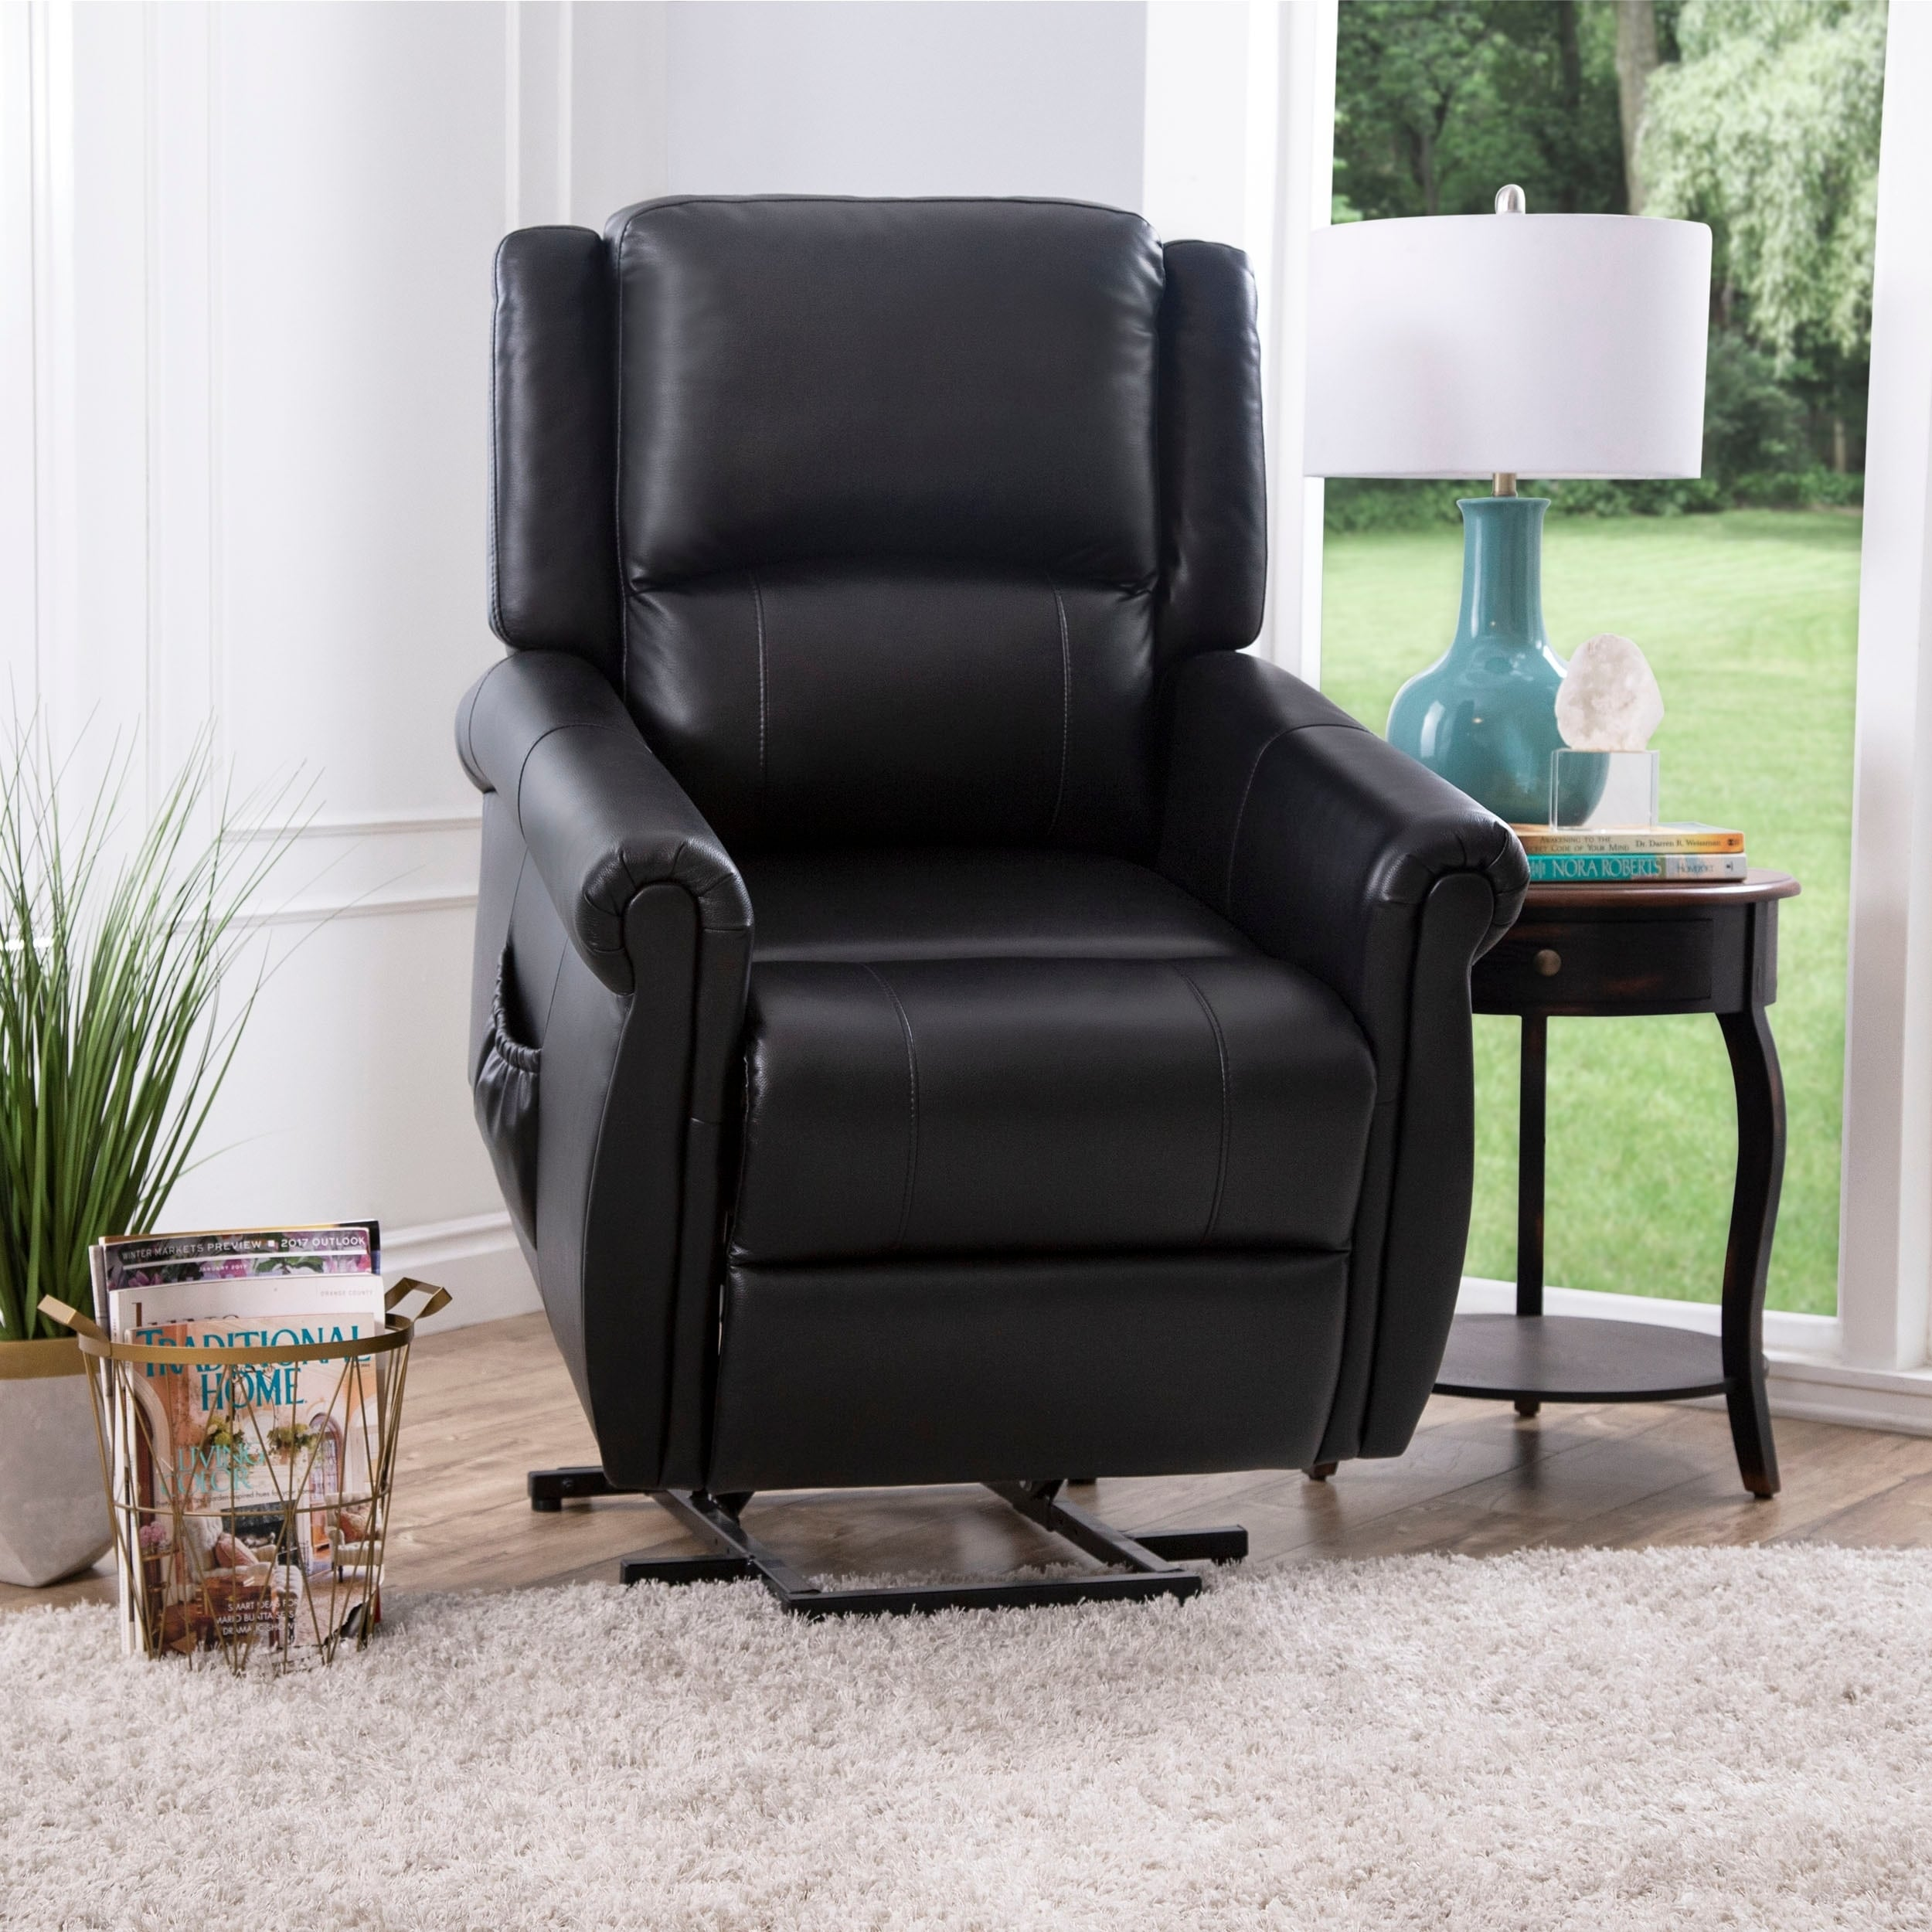 Discount Leather Chairs Buy Leather Recliner Chairs Rocking Recliners Online At